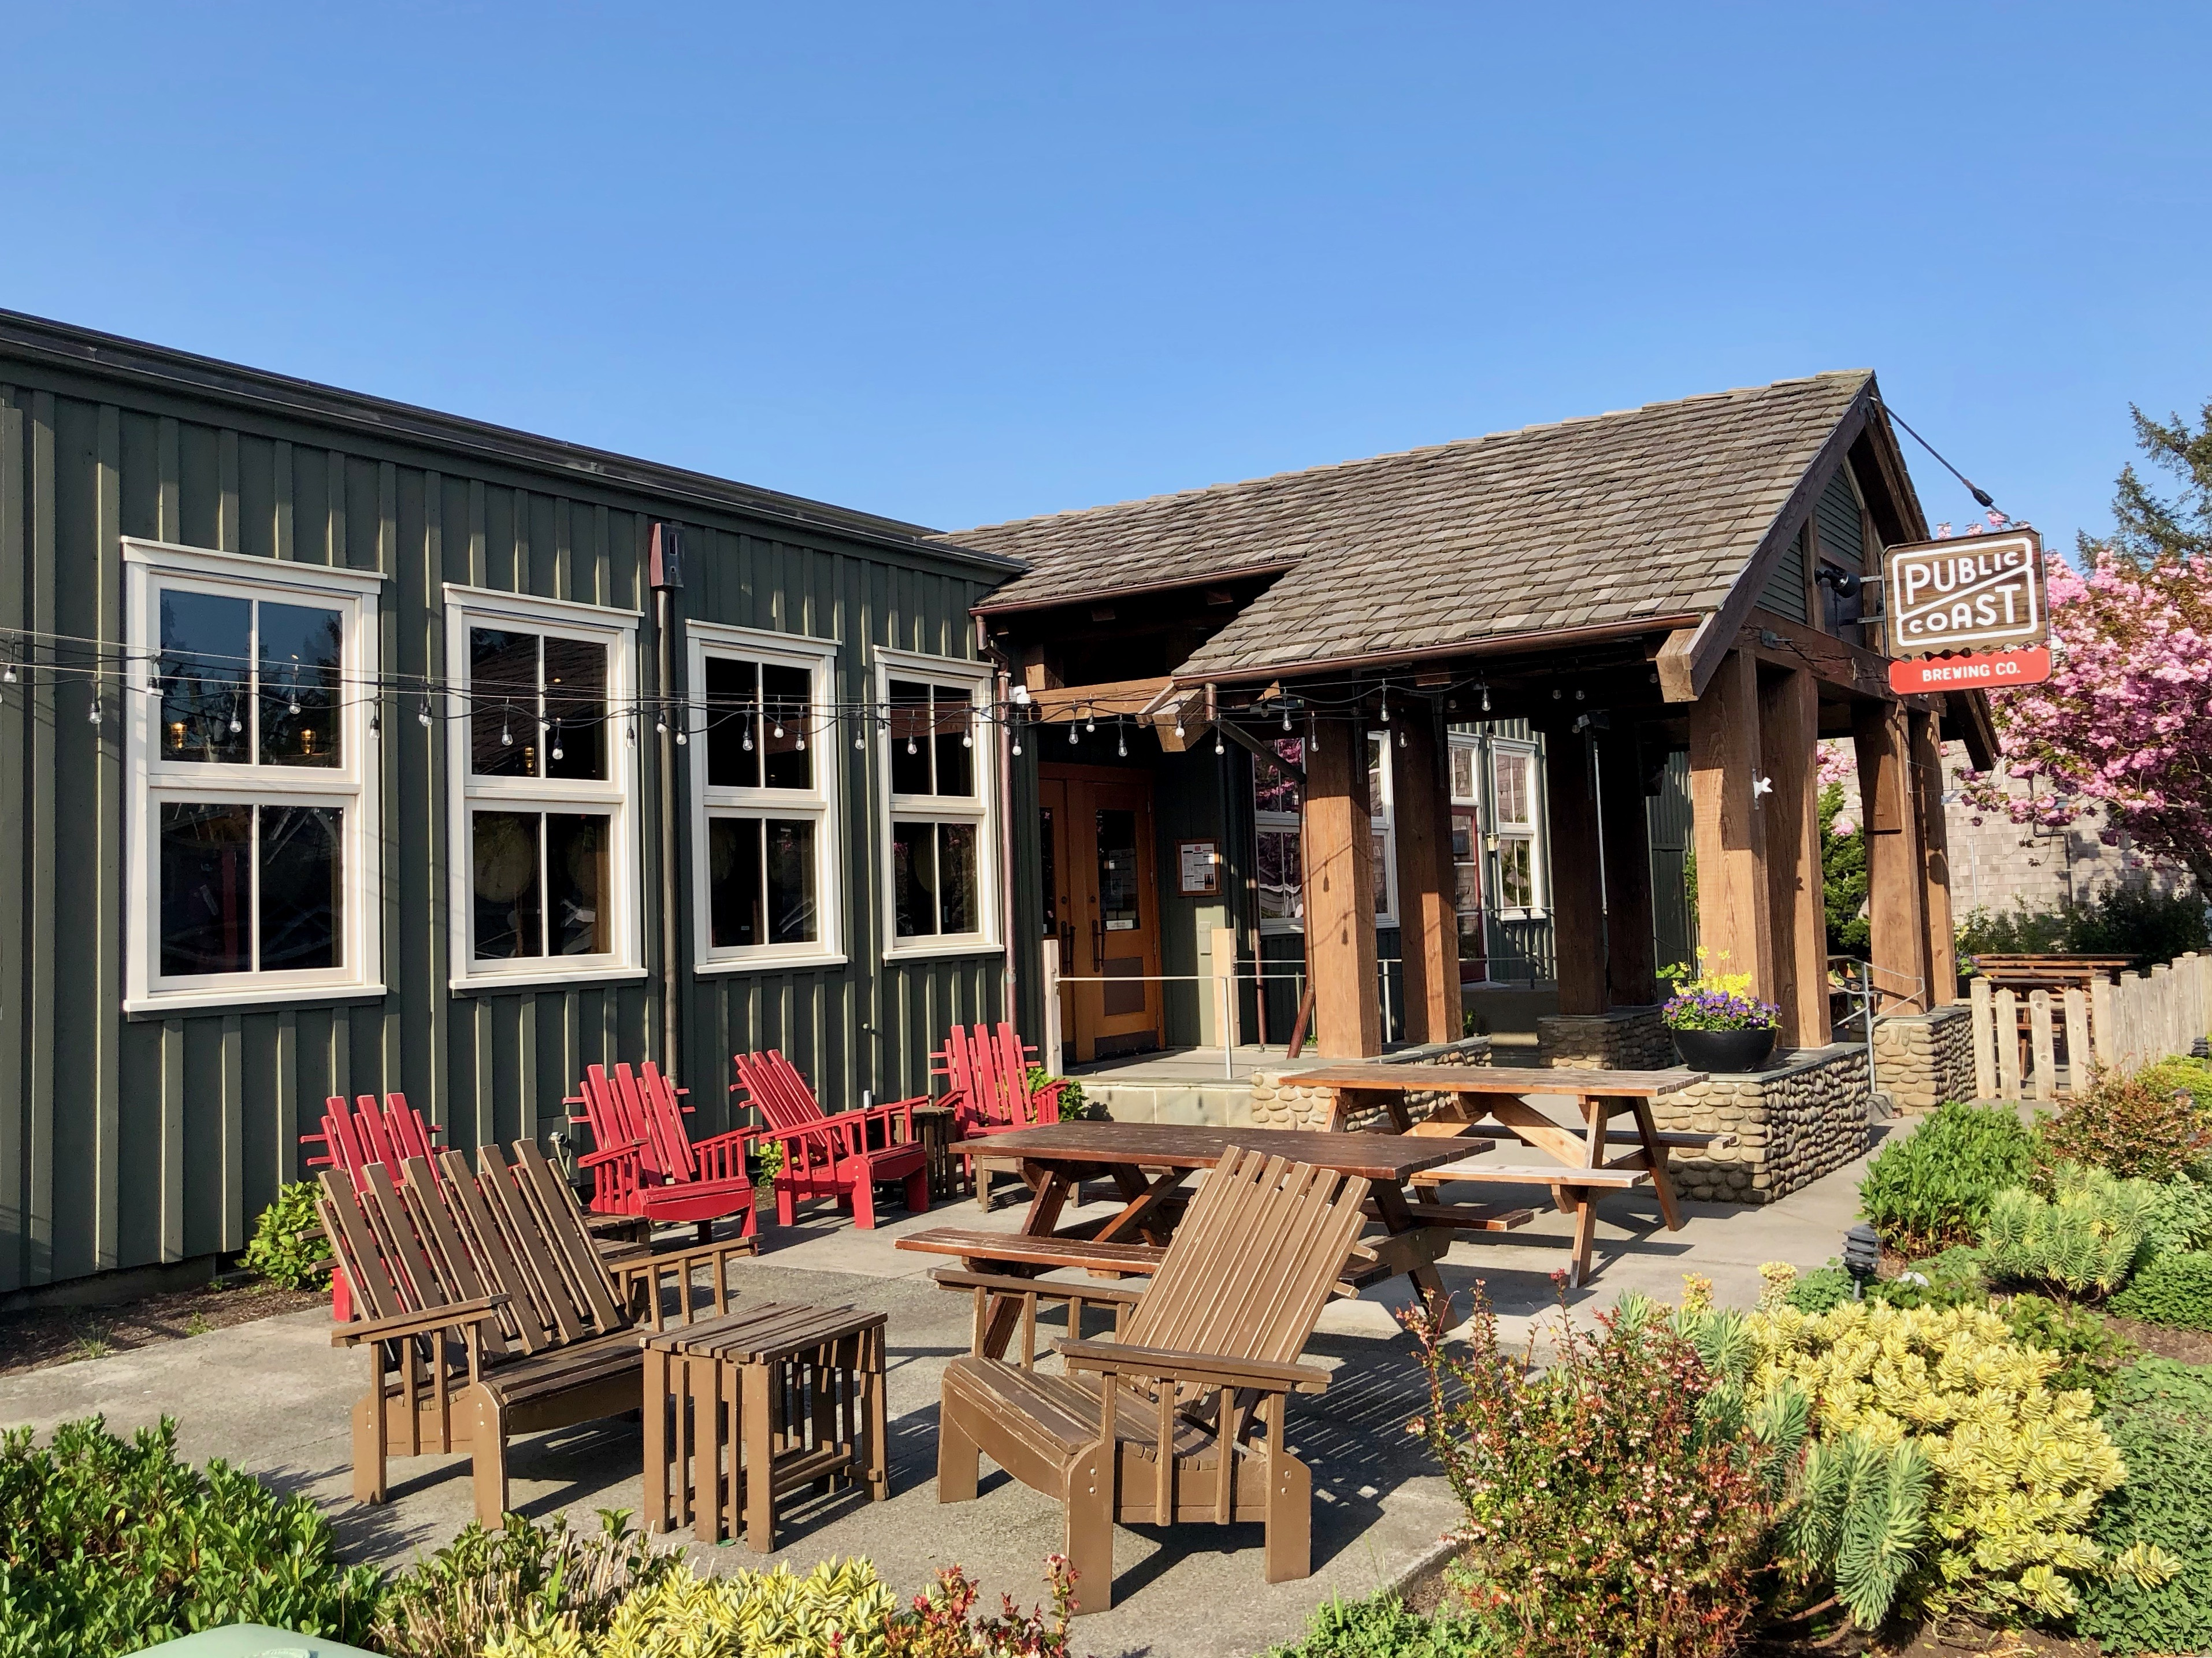 Public Coast Brewing offers a nice outdoor patio in downtown Cannon Beach, Oregon.